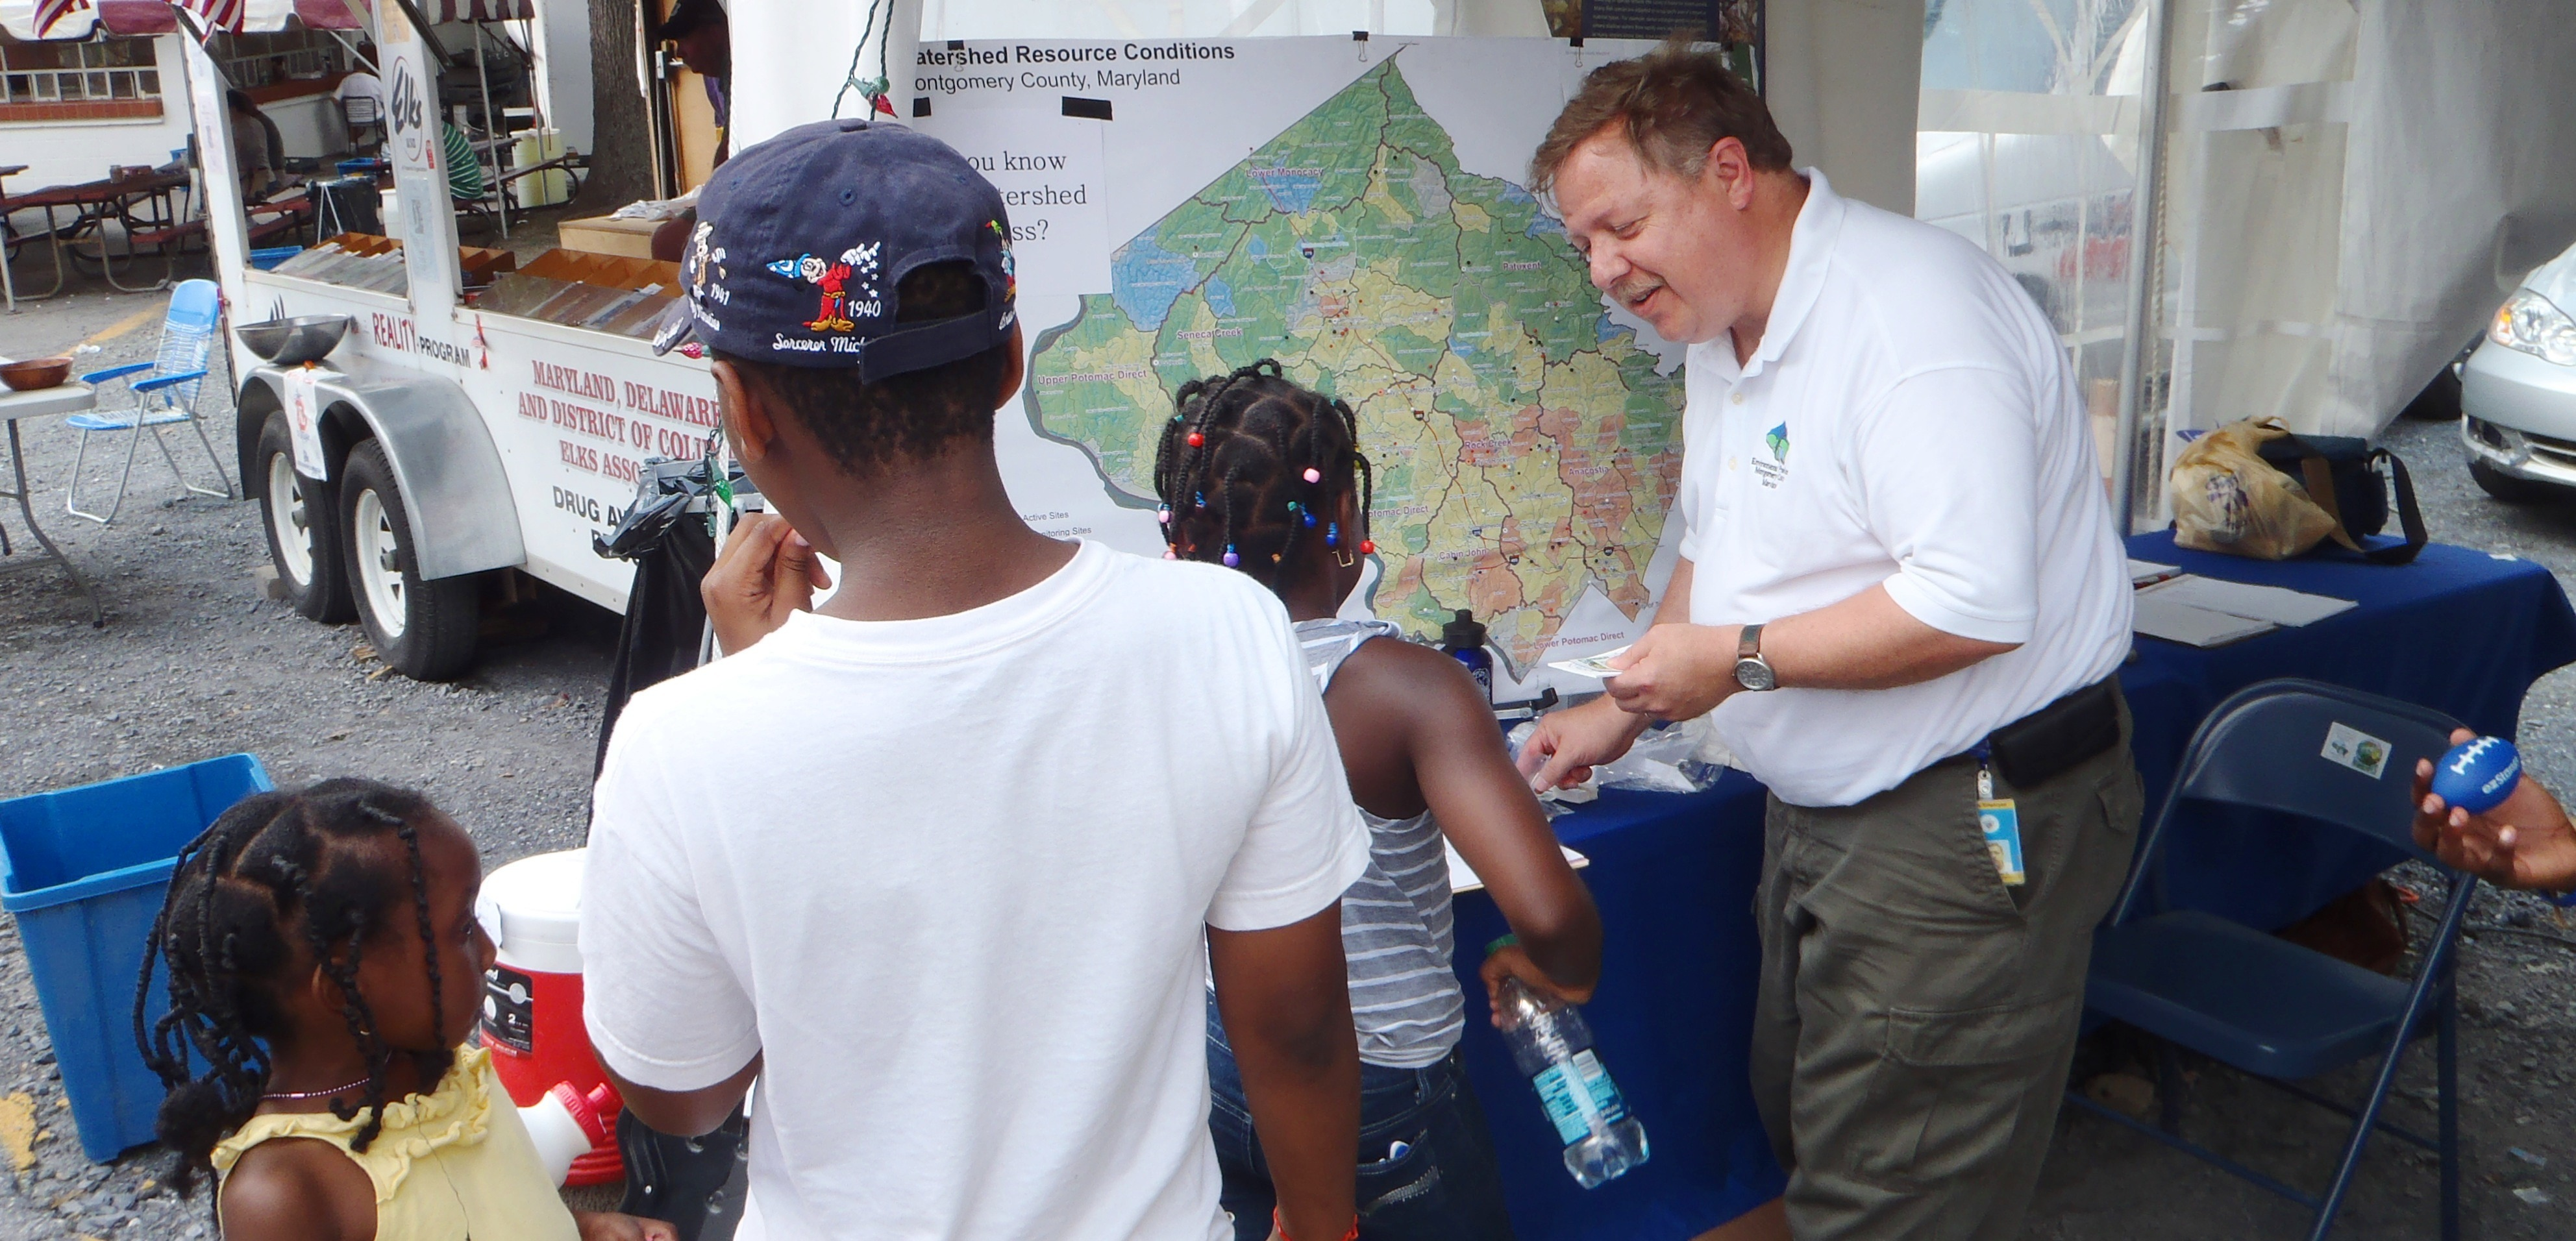 Image of Department of Environmental Protection staff member teaching kids about watersheds.